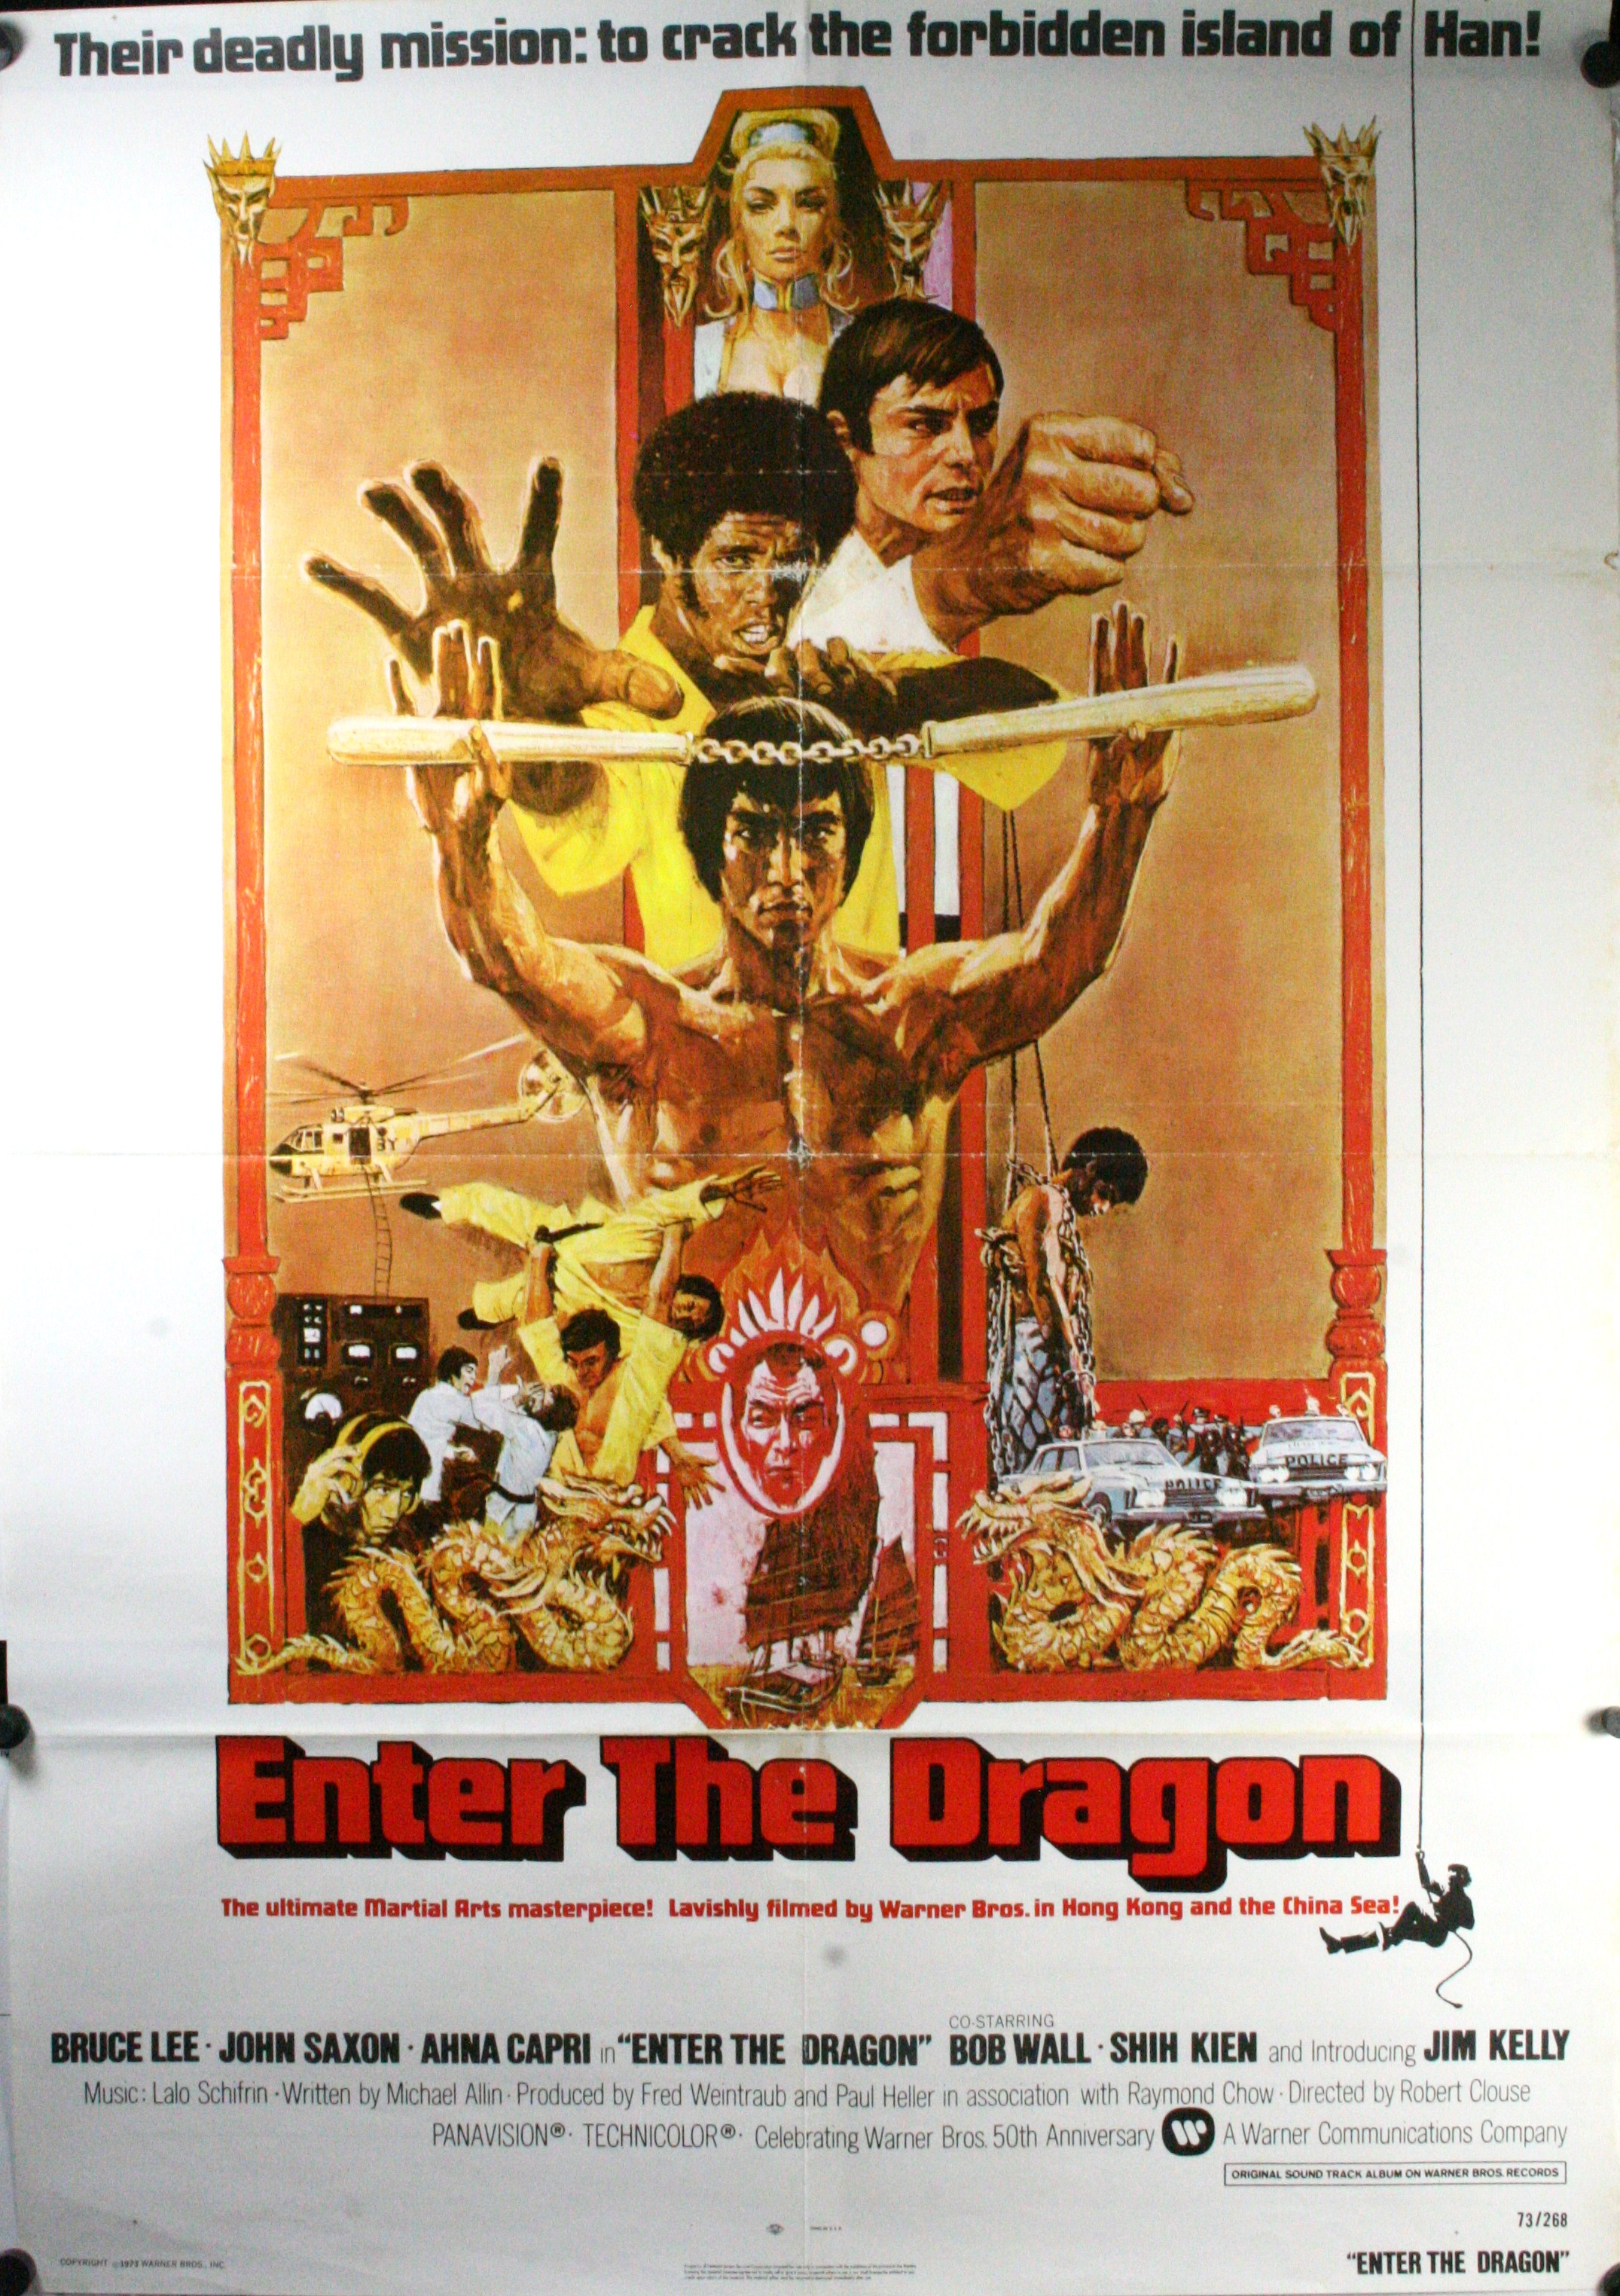 Bruce lee movie posters